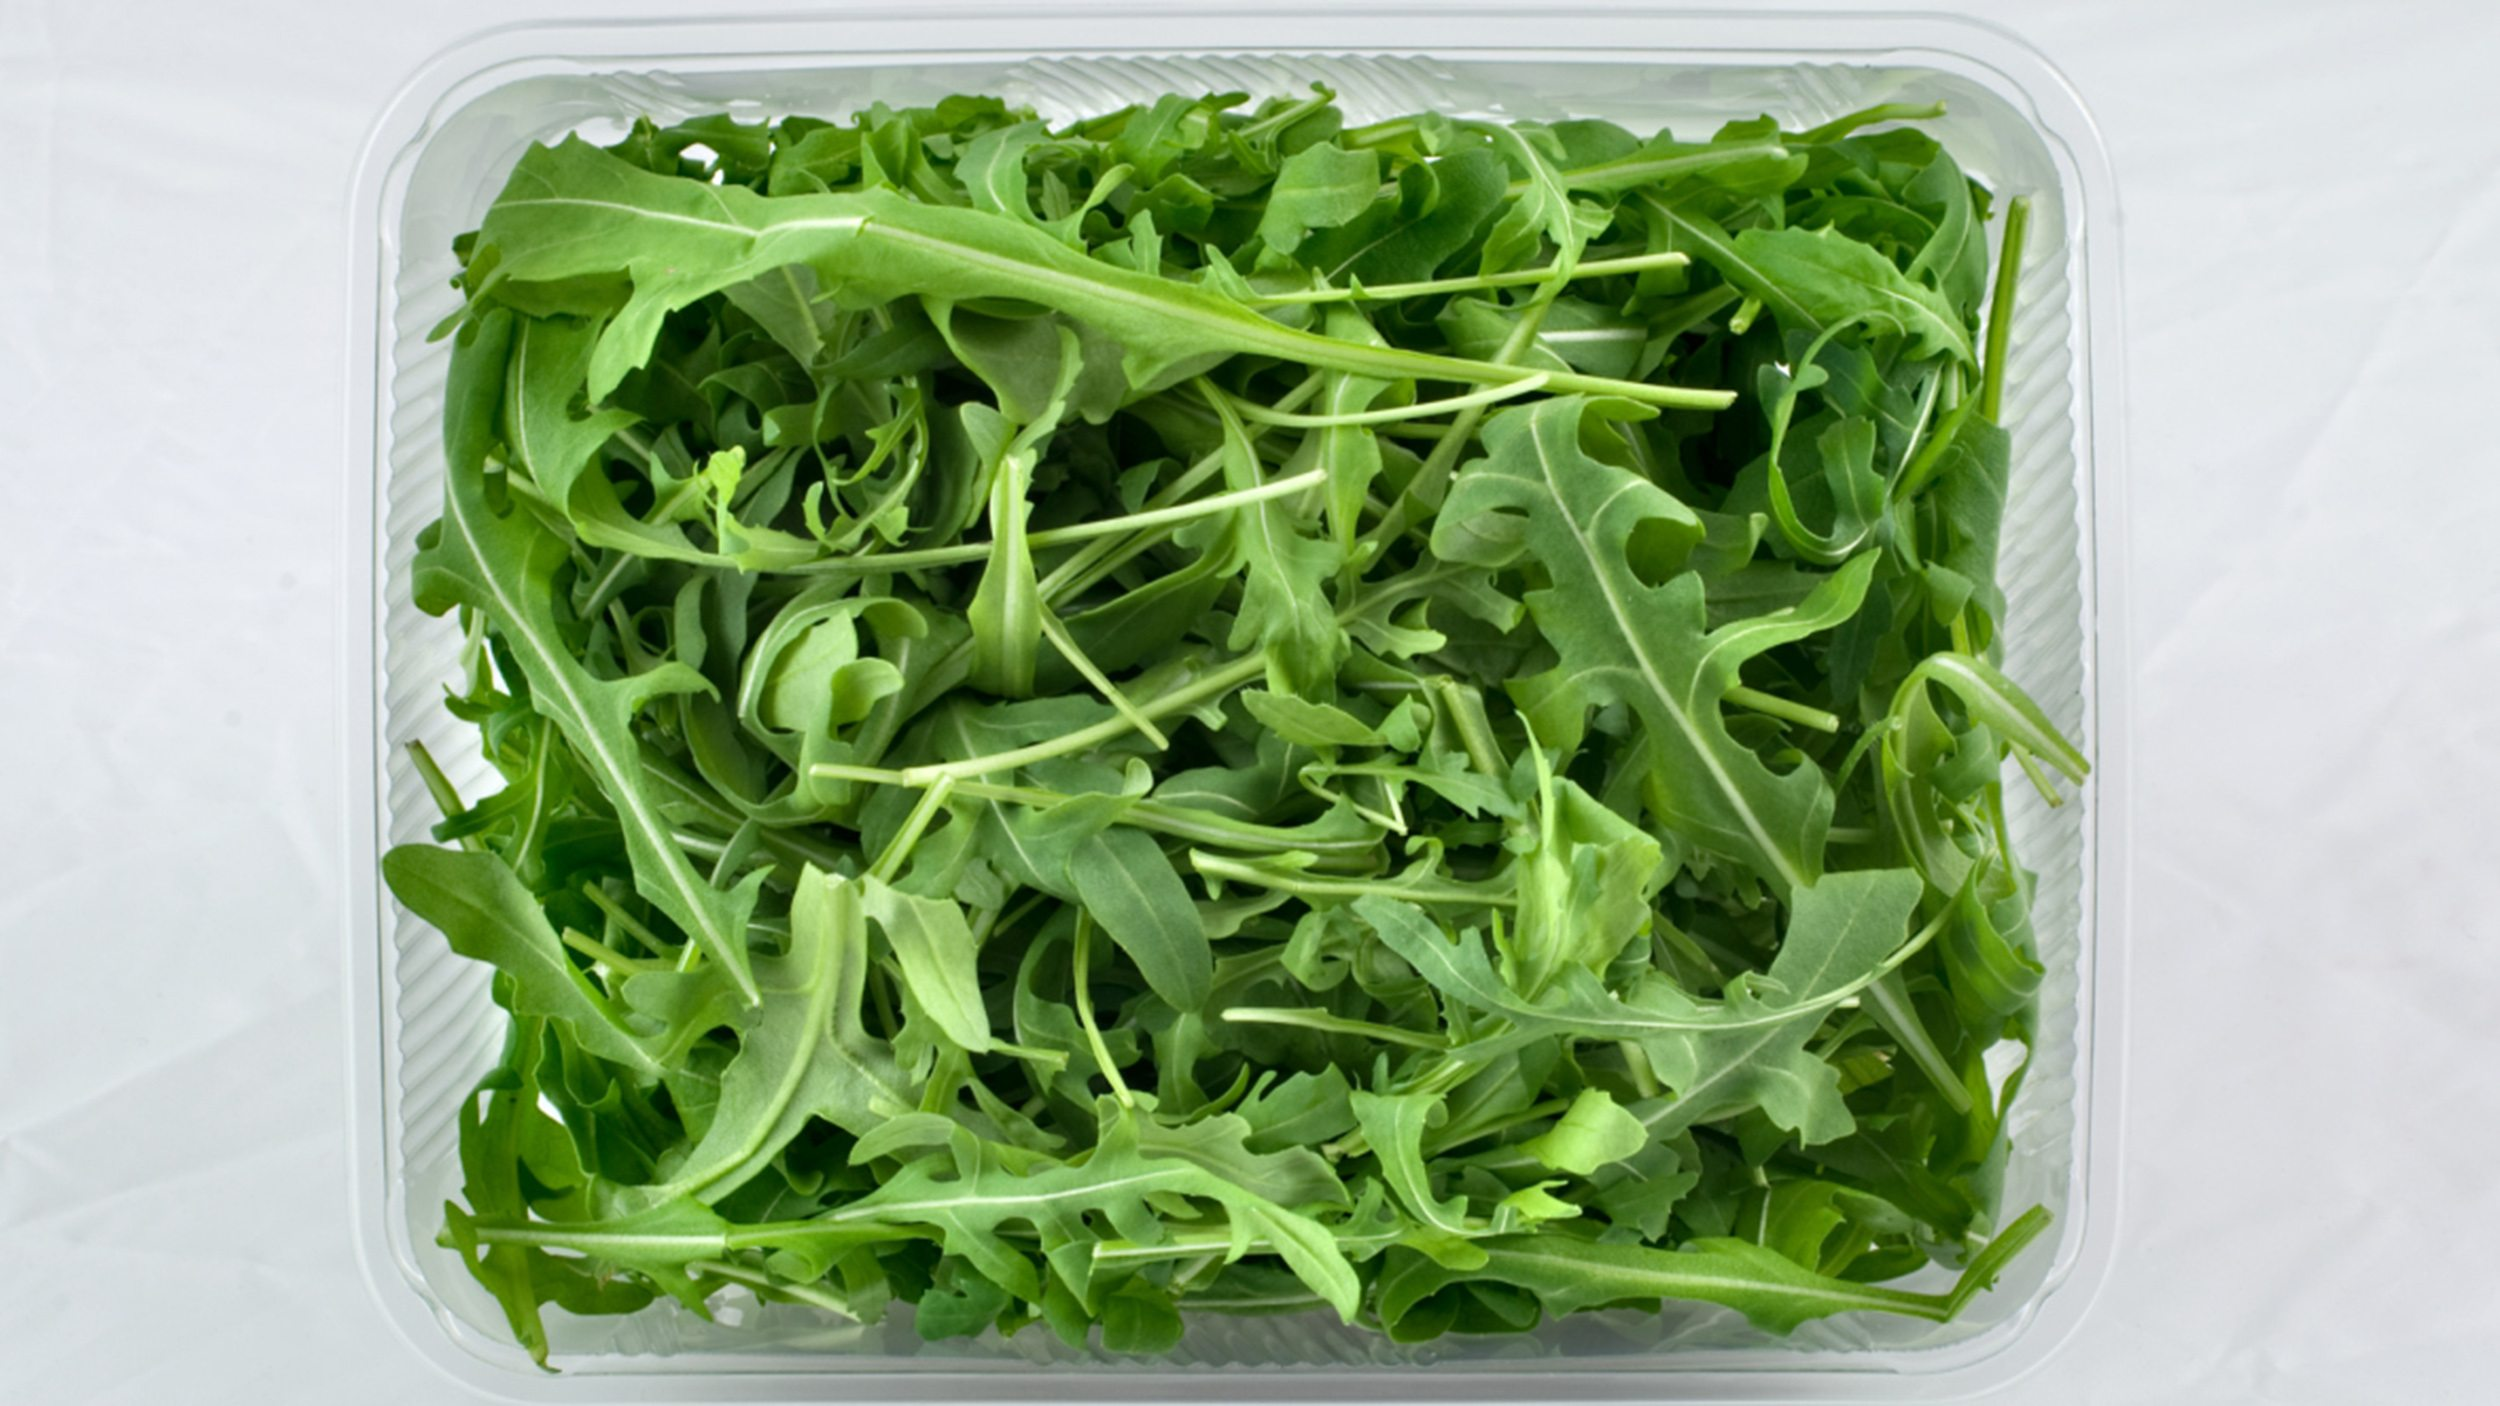 A box of salad